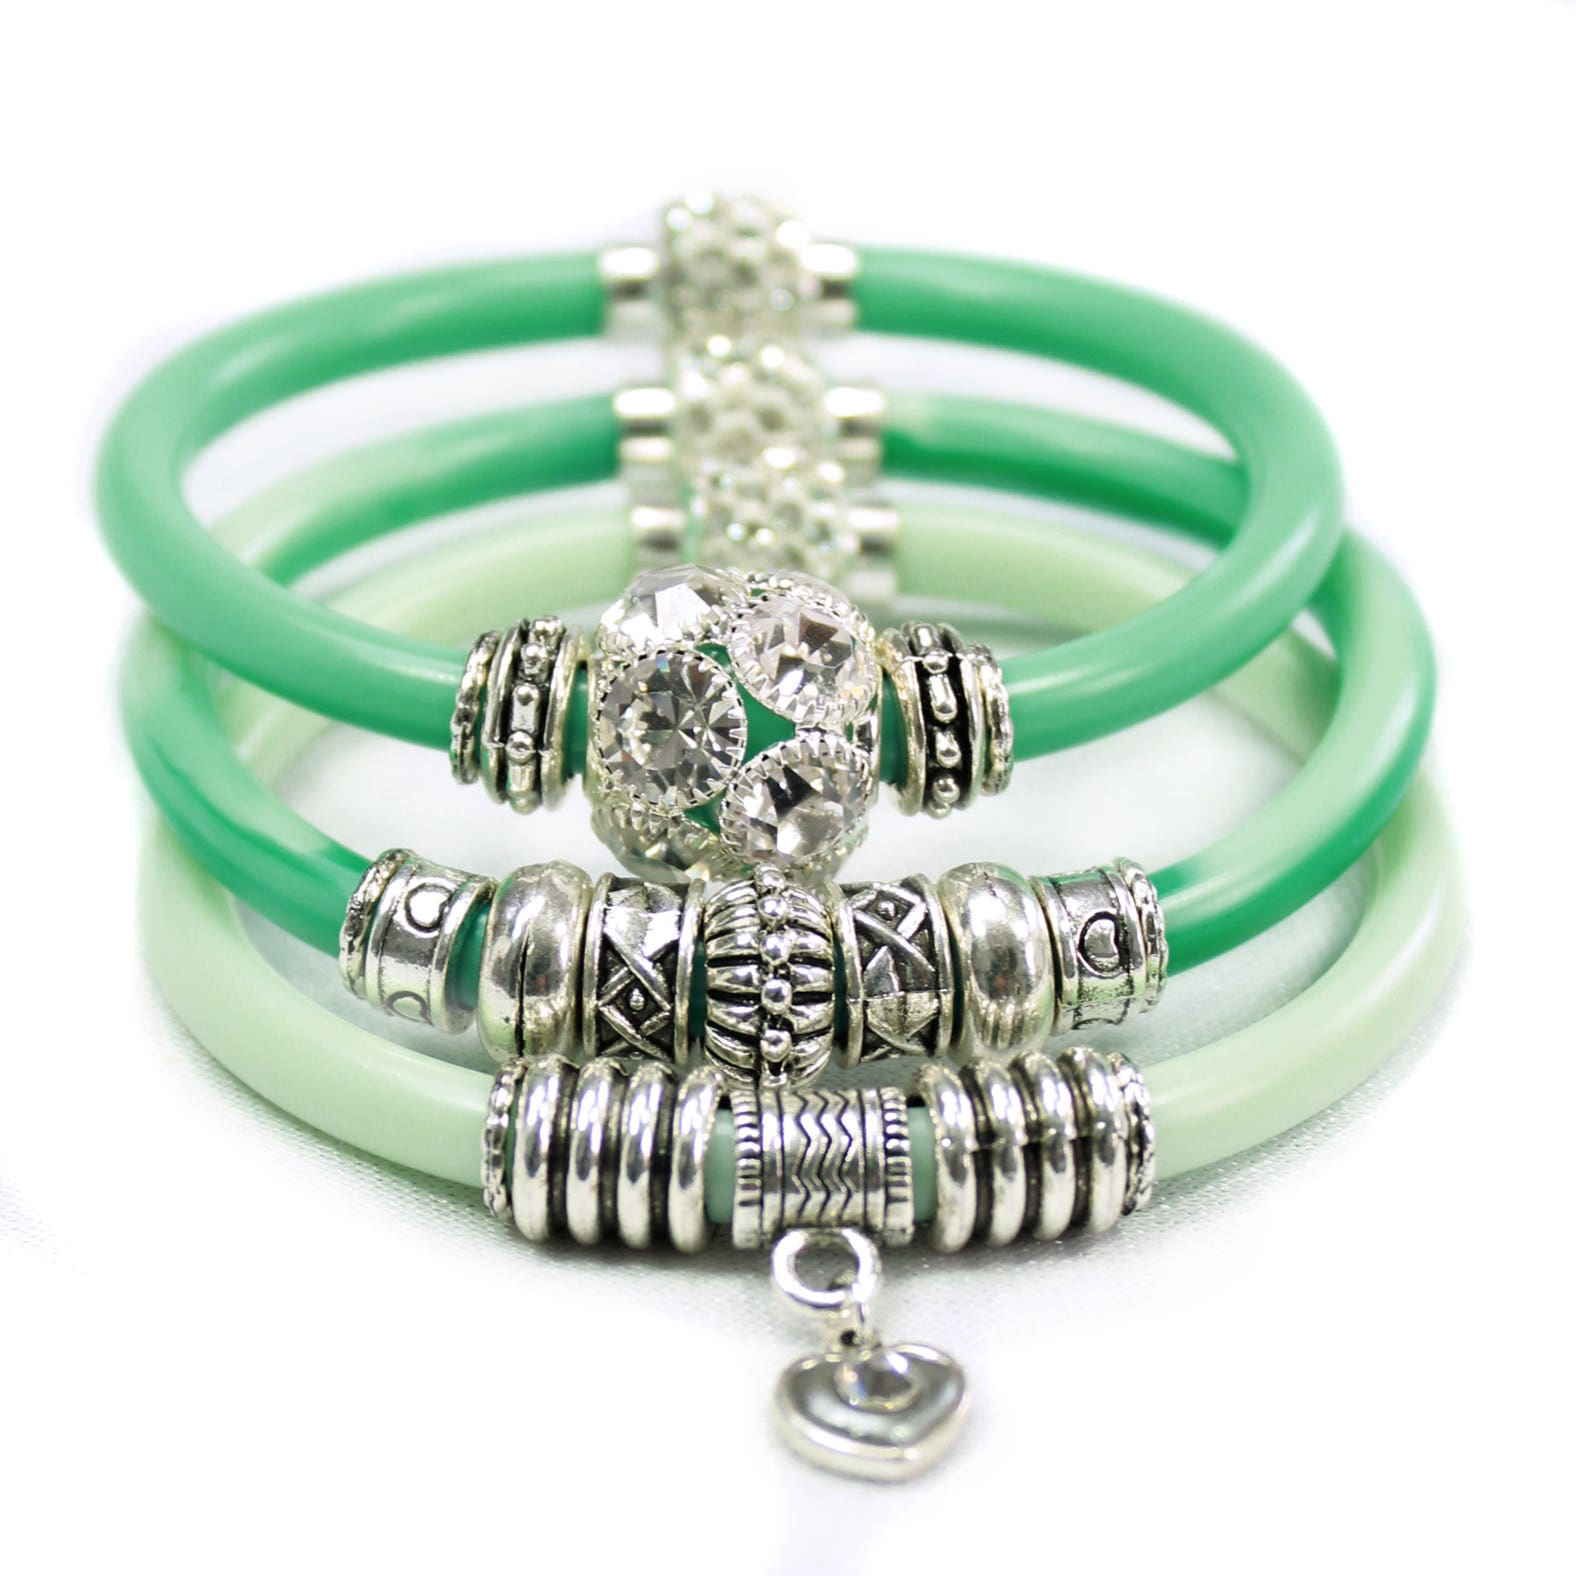 Stack of 3 green resin bracelets with silver beads and charms attached.